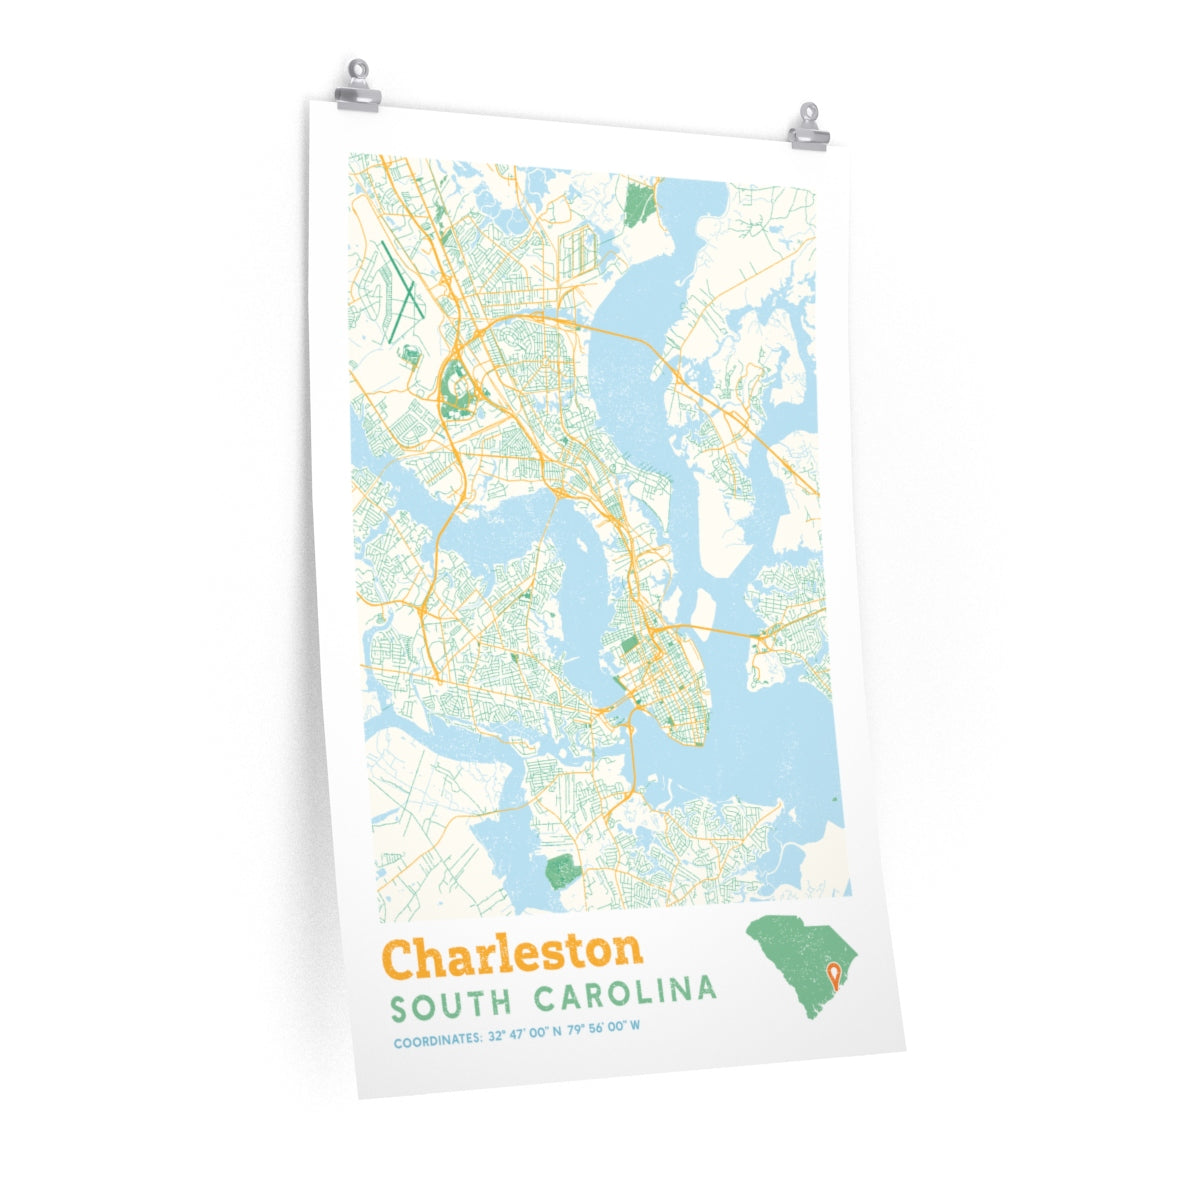 Charleston South Carolina City Street Map Poster Allegiant Goods Co